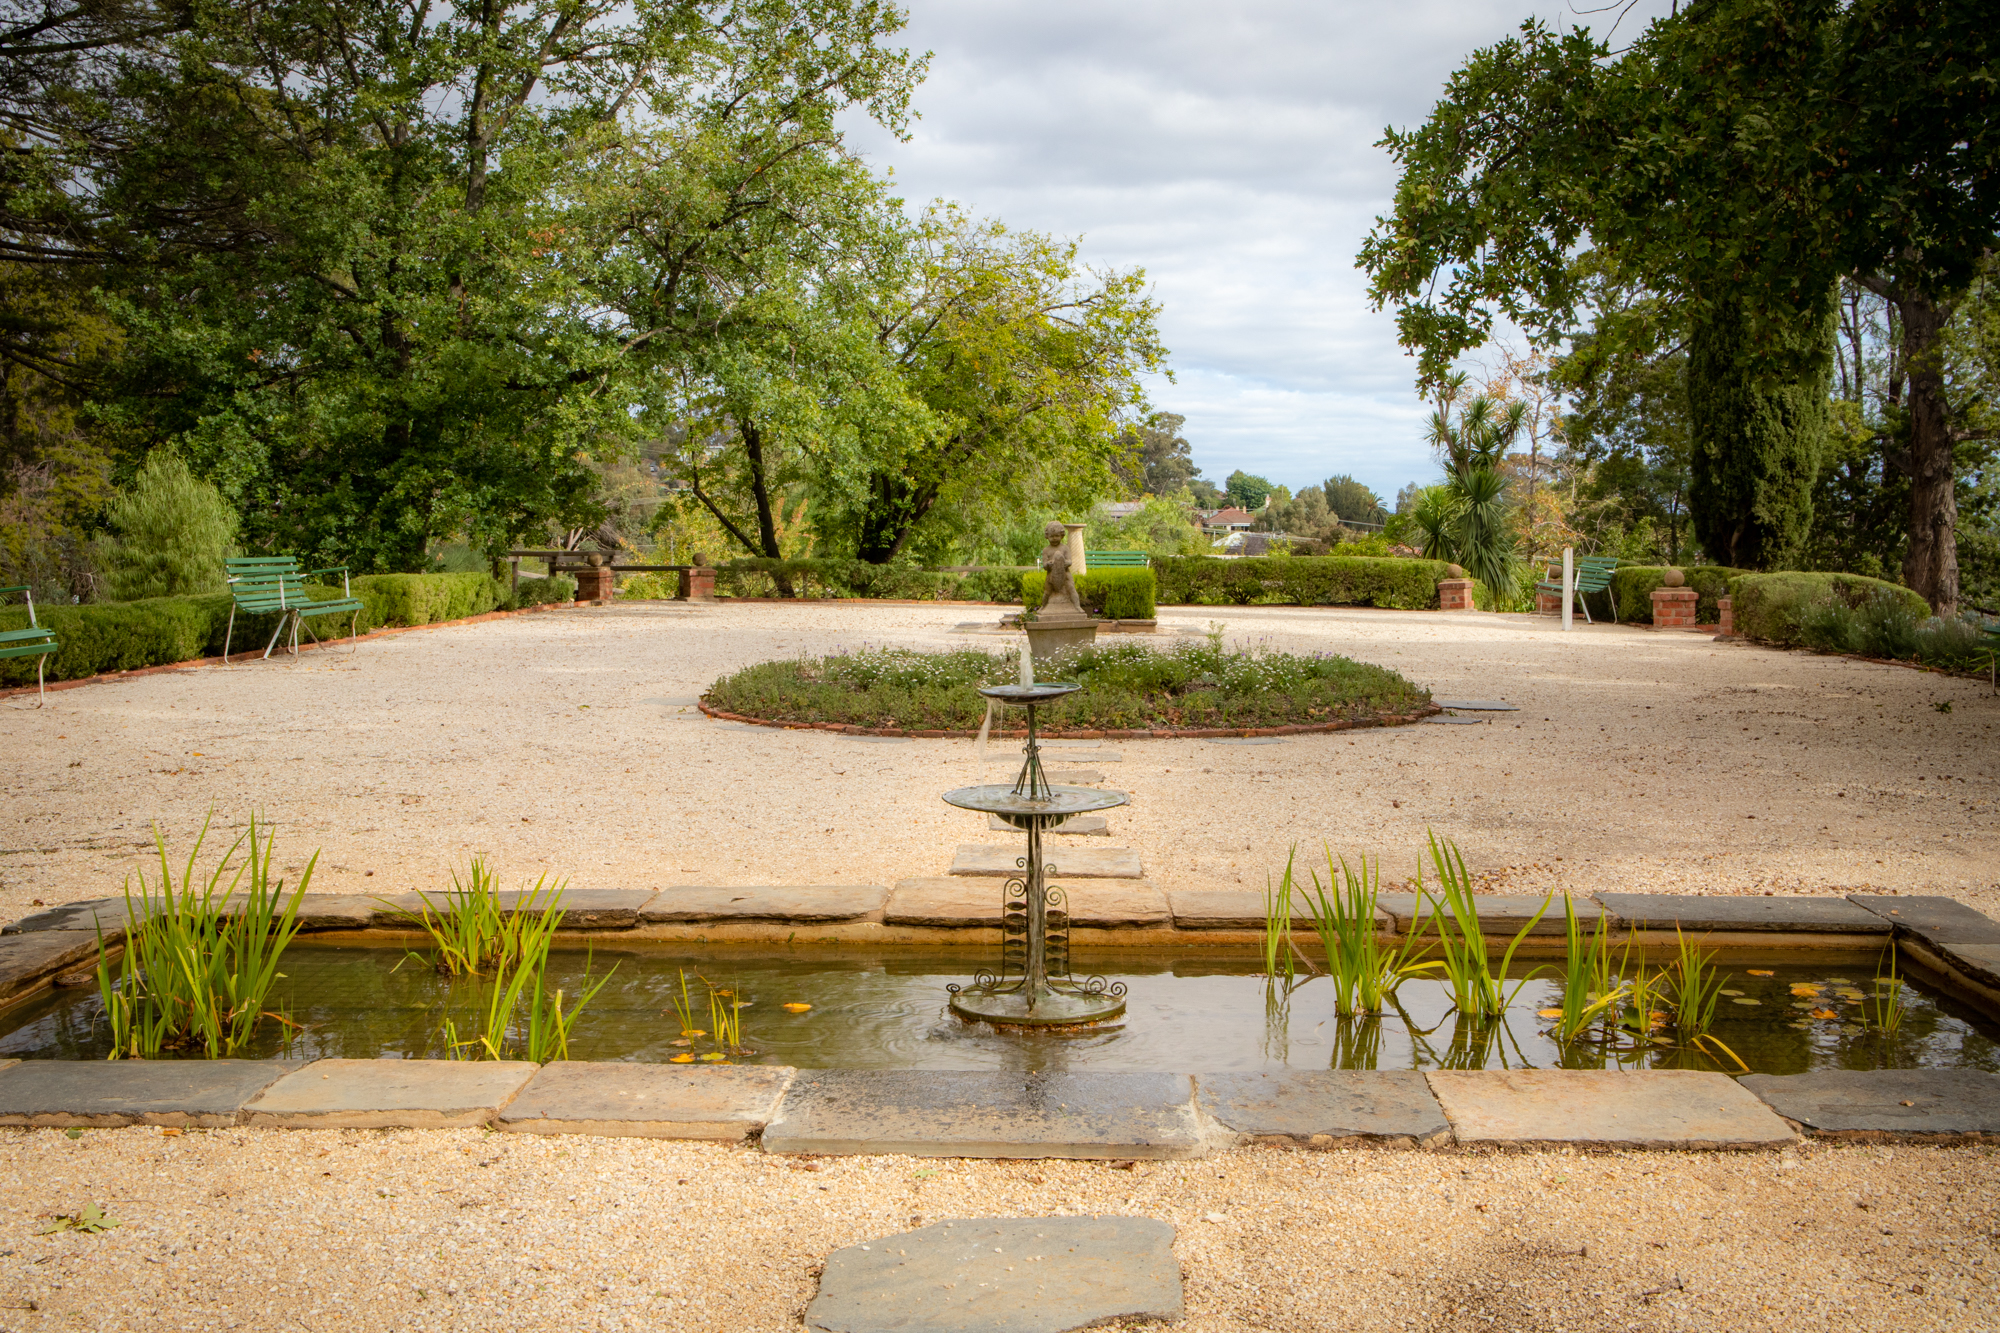 The Fountain in the formal garden